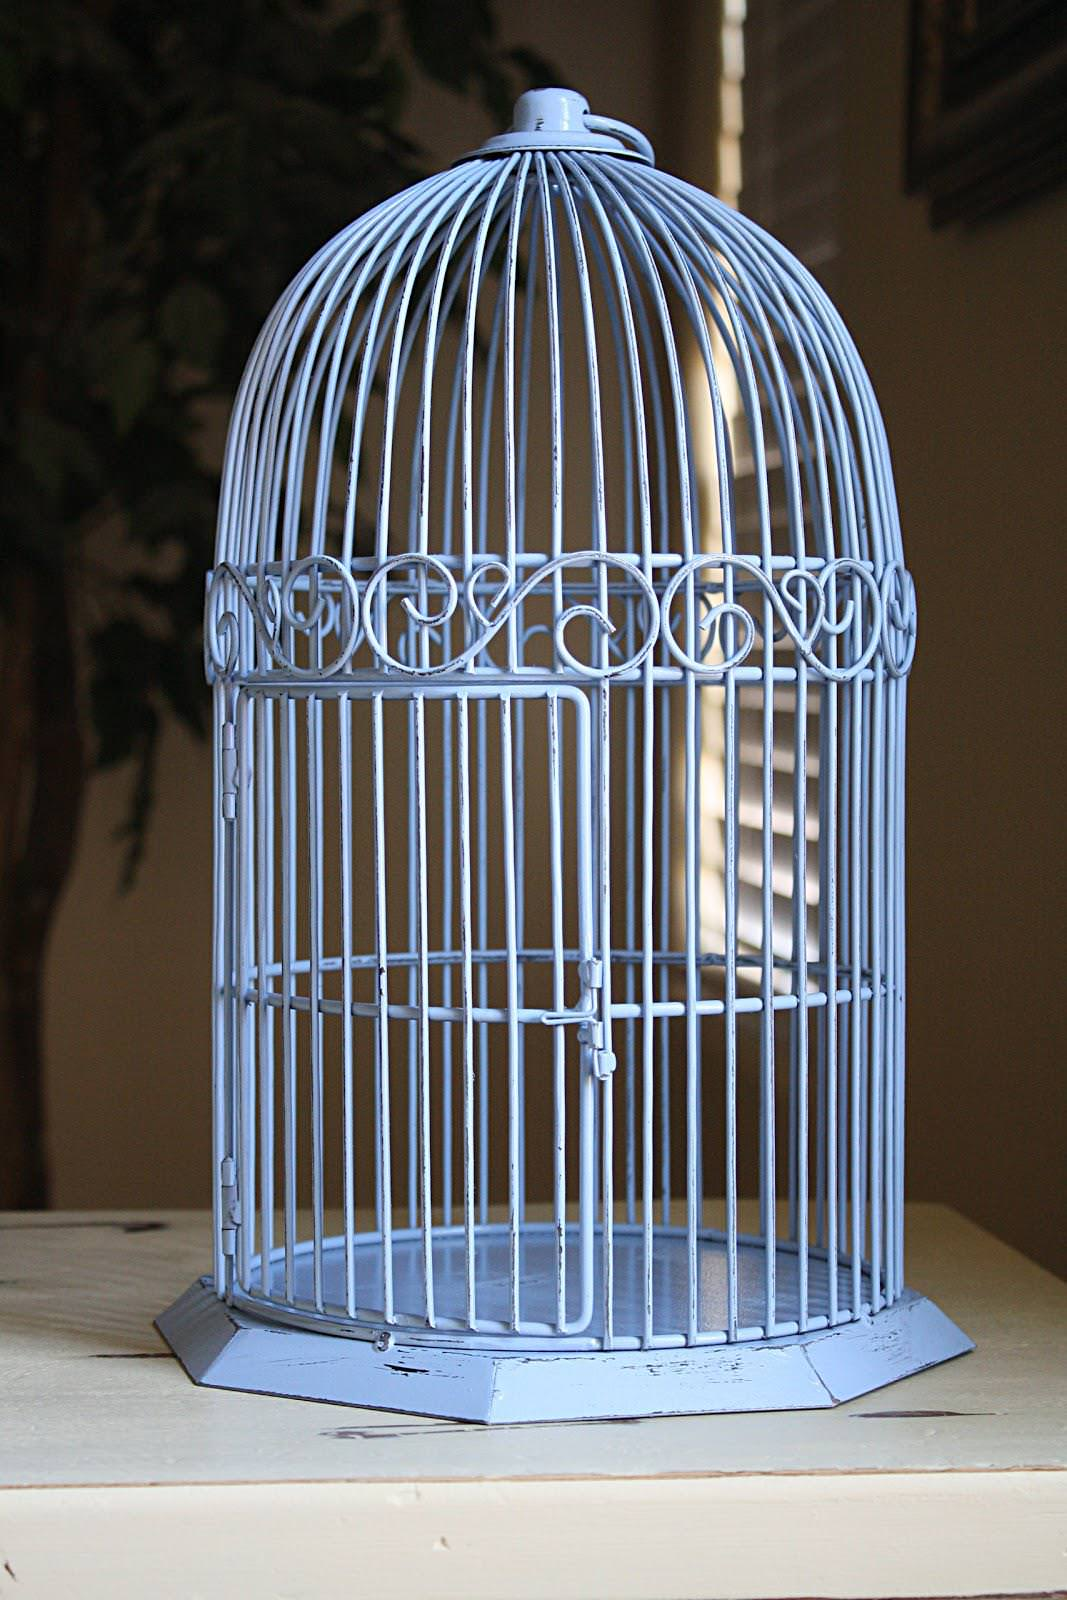 Image of: Decorative Bird Cages Cheap